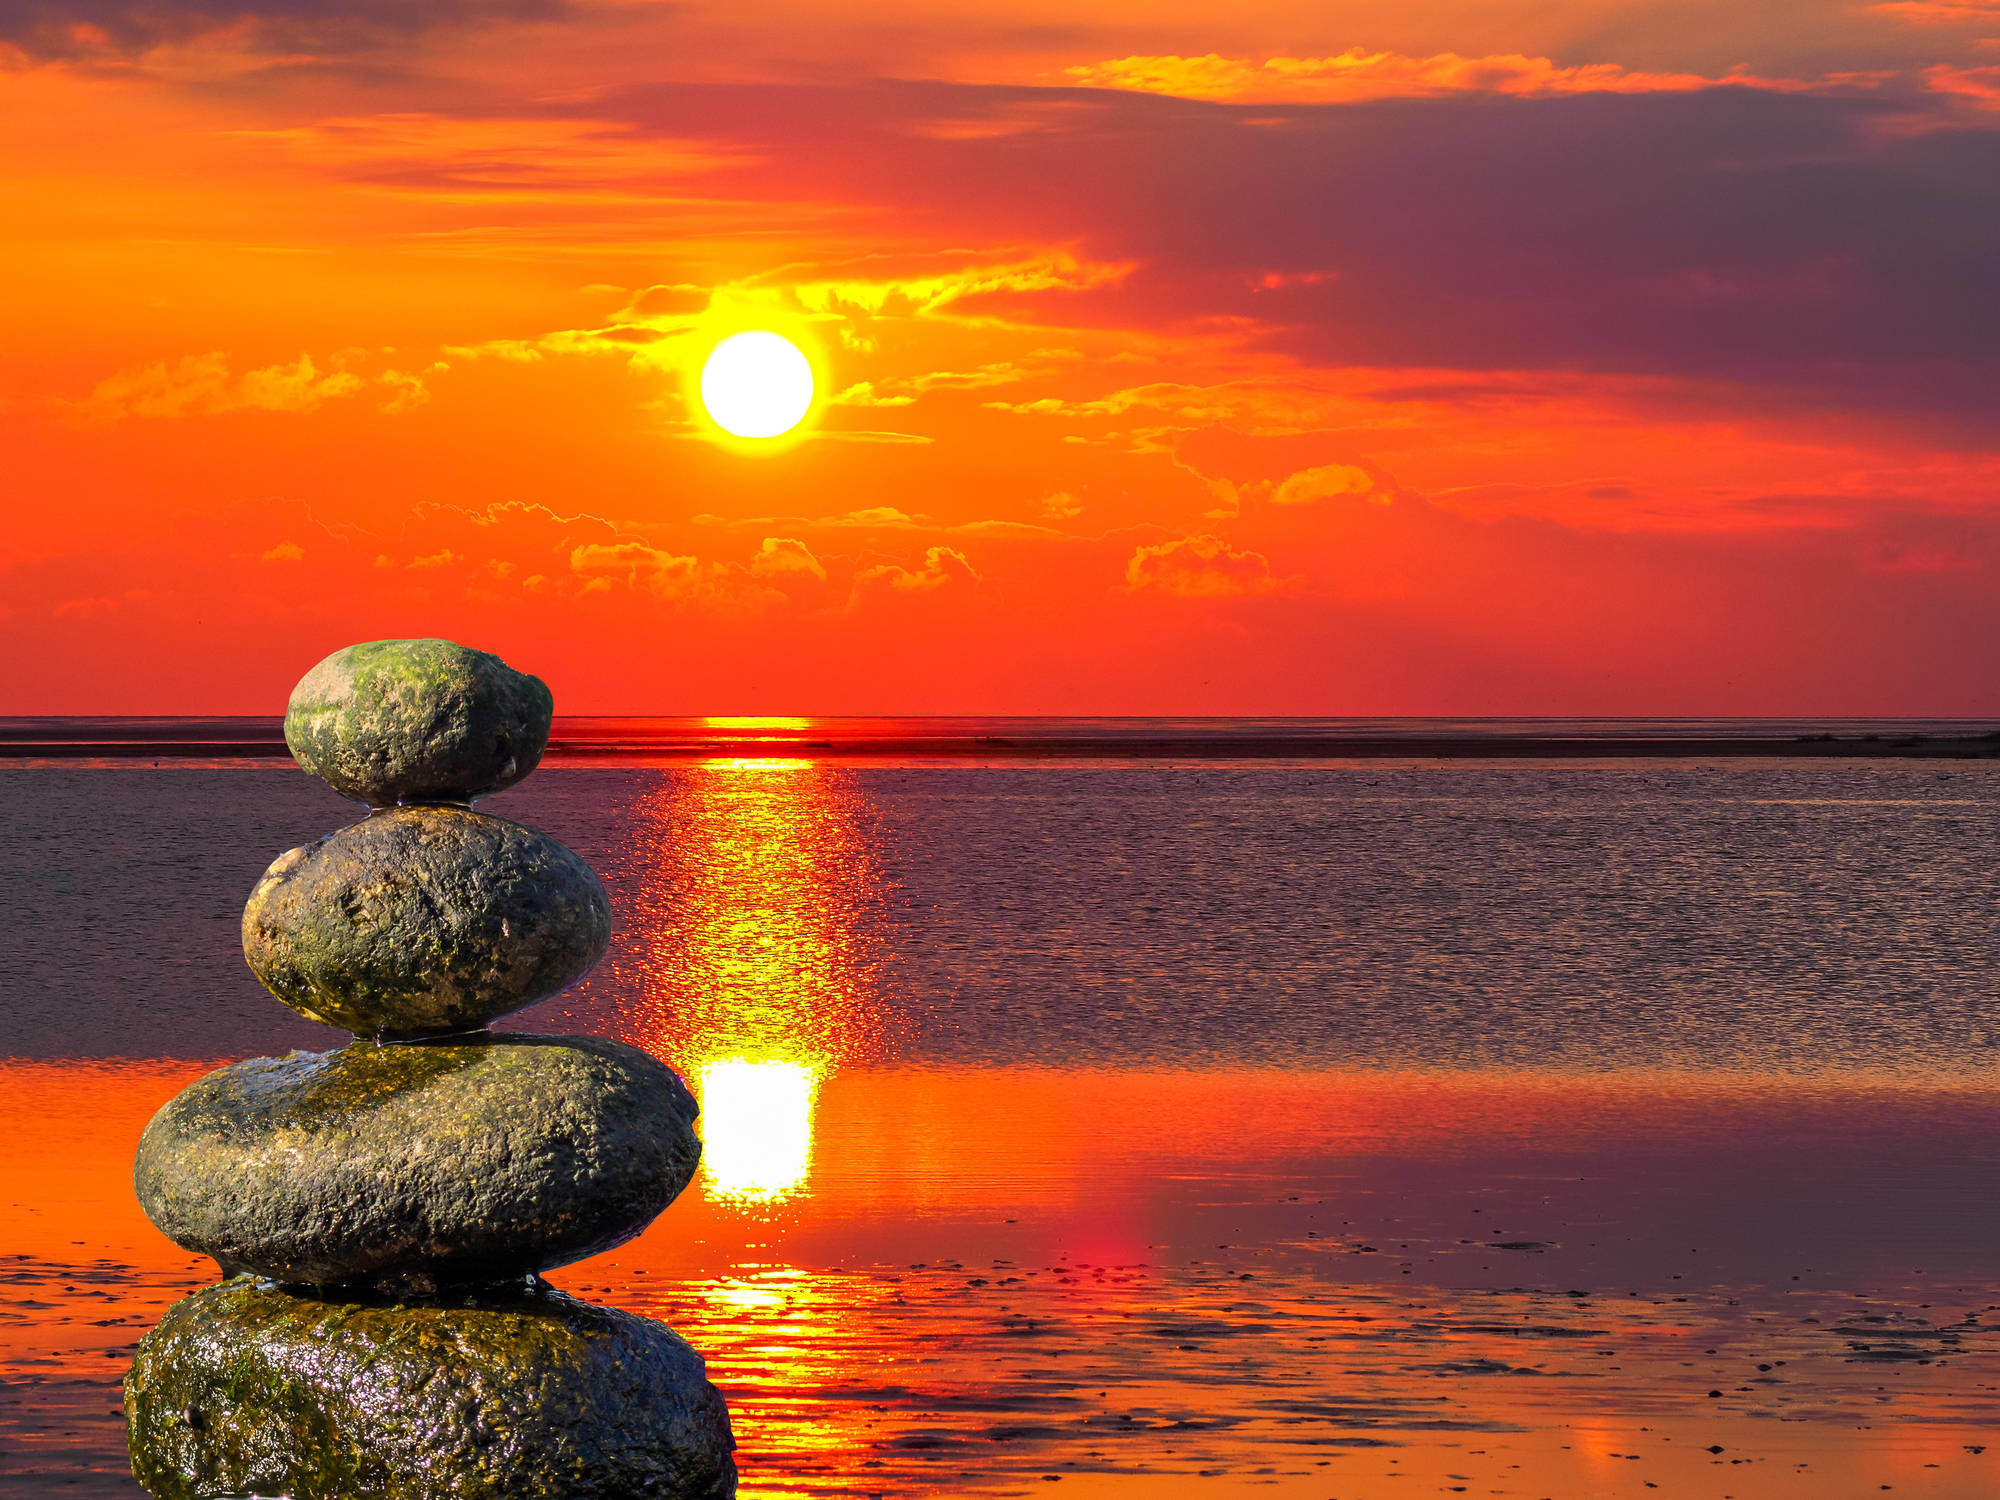 Balance stones at sunset with the sea in the background.